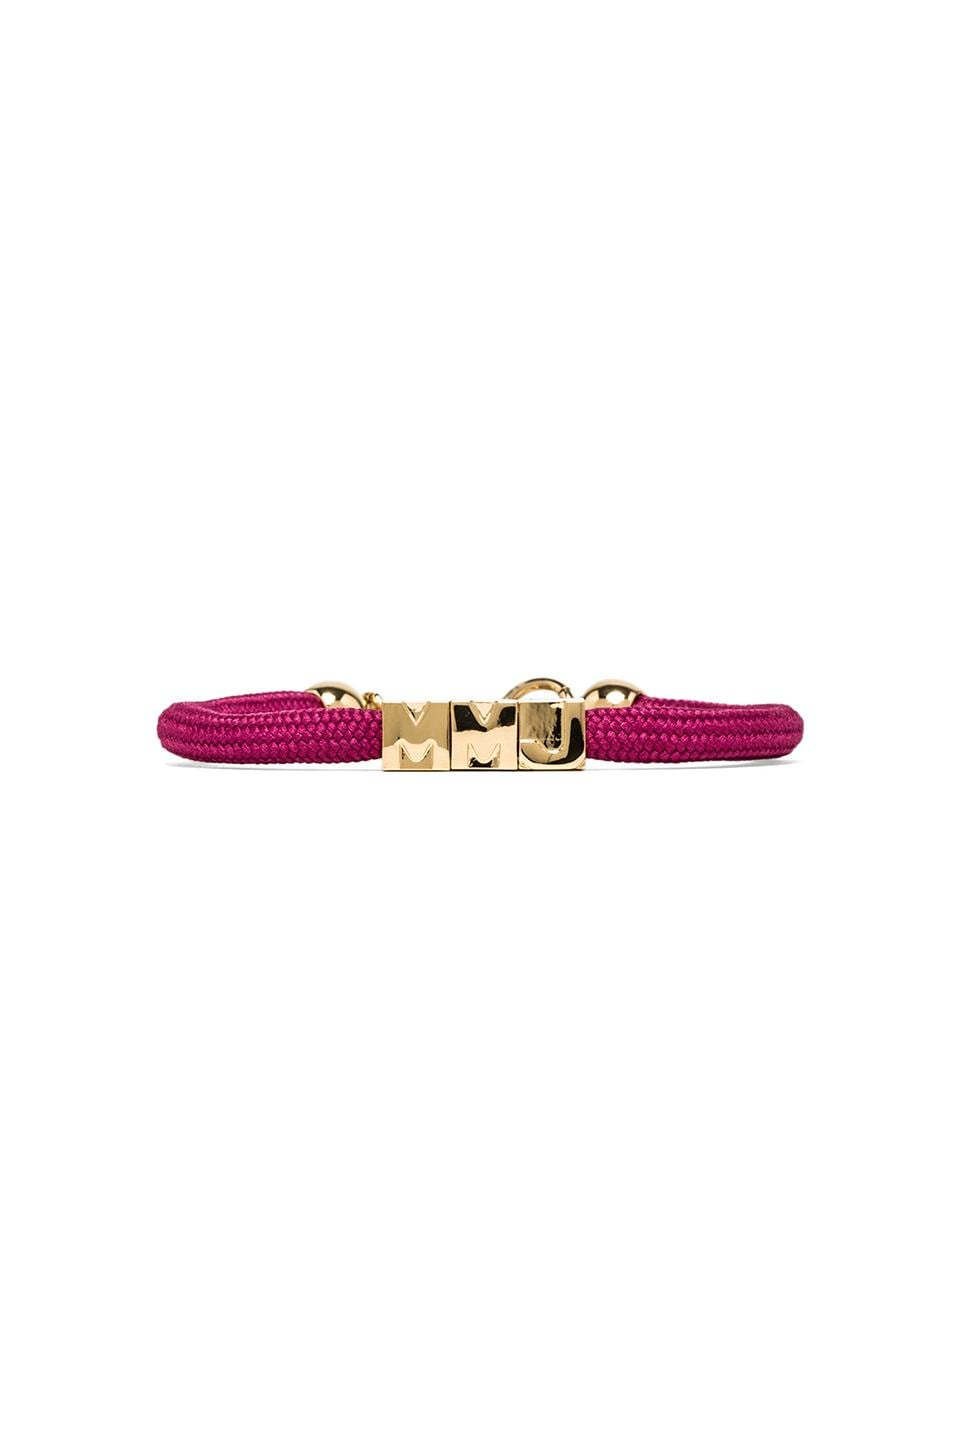 Marc by Marc Jacobs Grab & Go MMJ Slider Bracelet in Rosa Mexicana & Oro